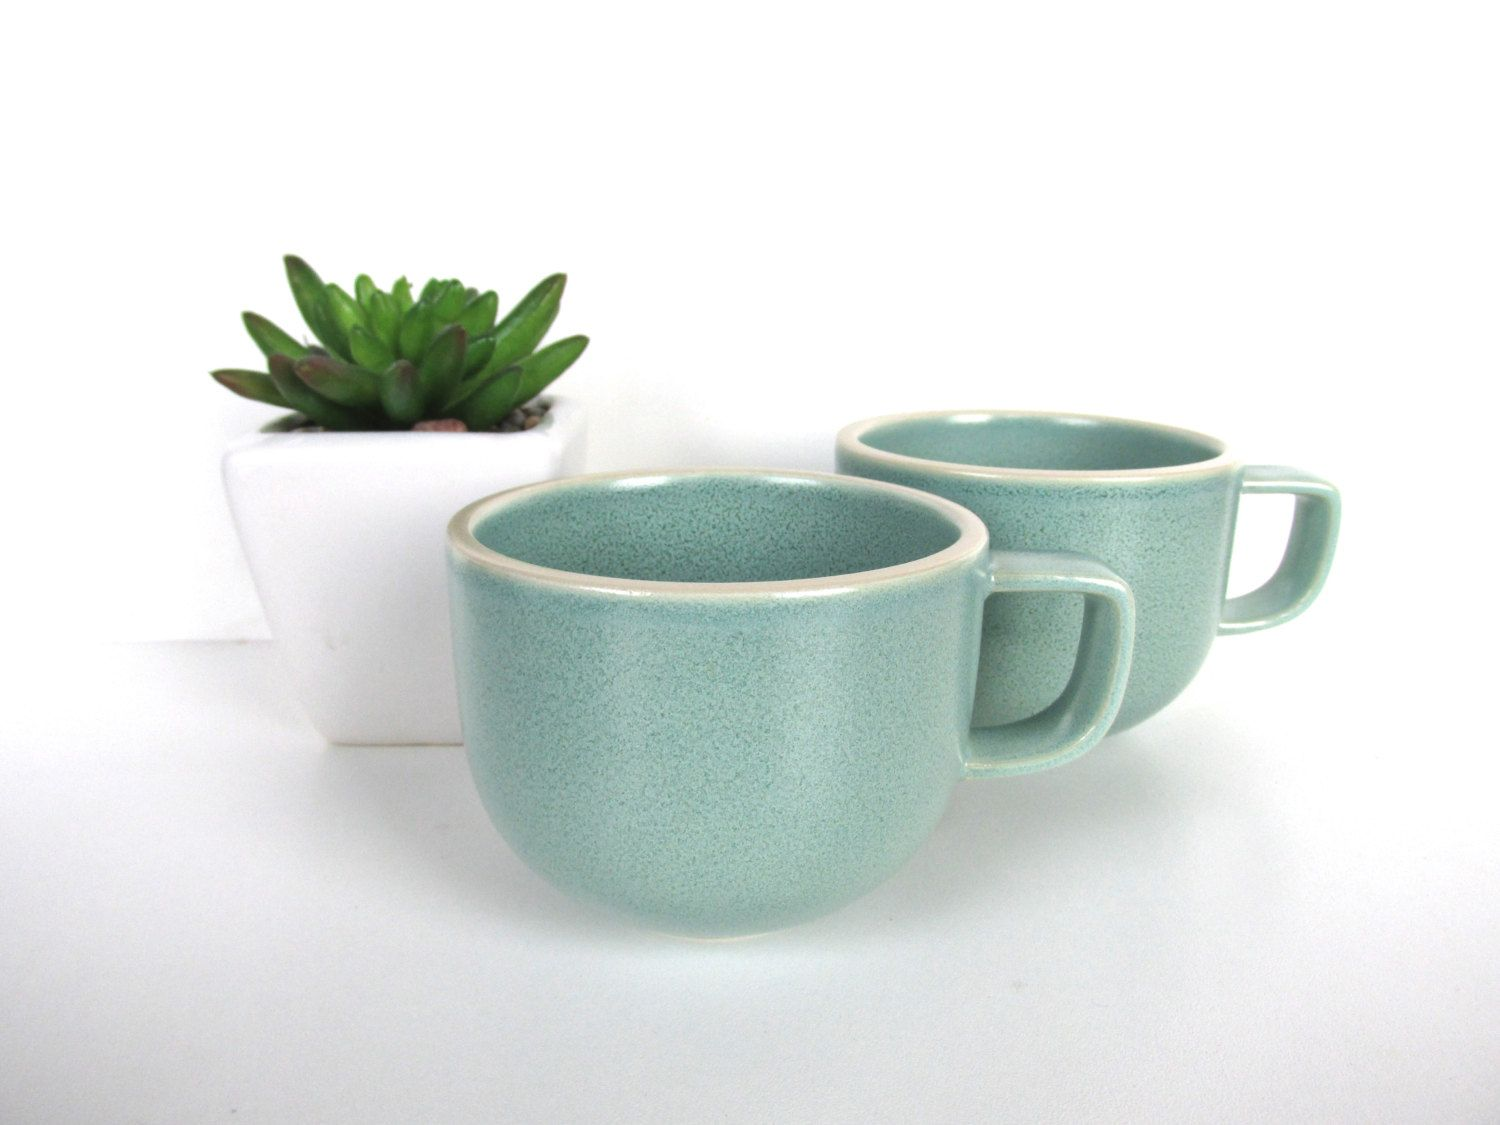 single massimo vignelli sasaki colorstone coffee mug in matte vert de grissea foam green post modern coffee cup minimalist kitchen. single massimo vignelli sasaki colorstone coffee mug in matte vert